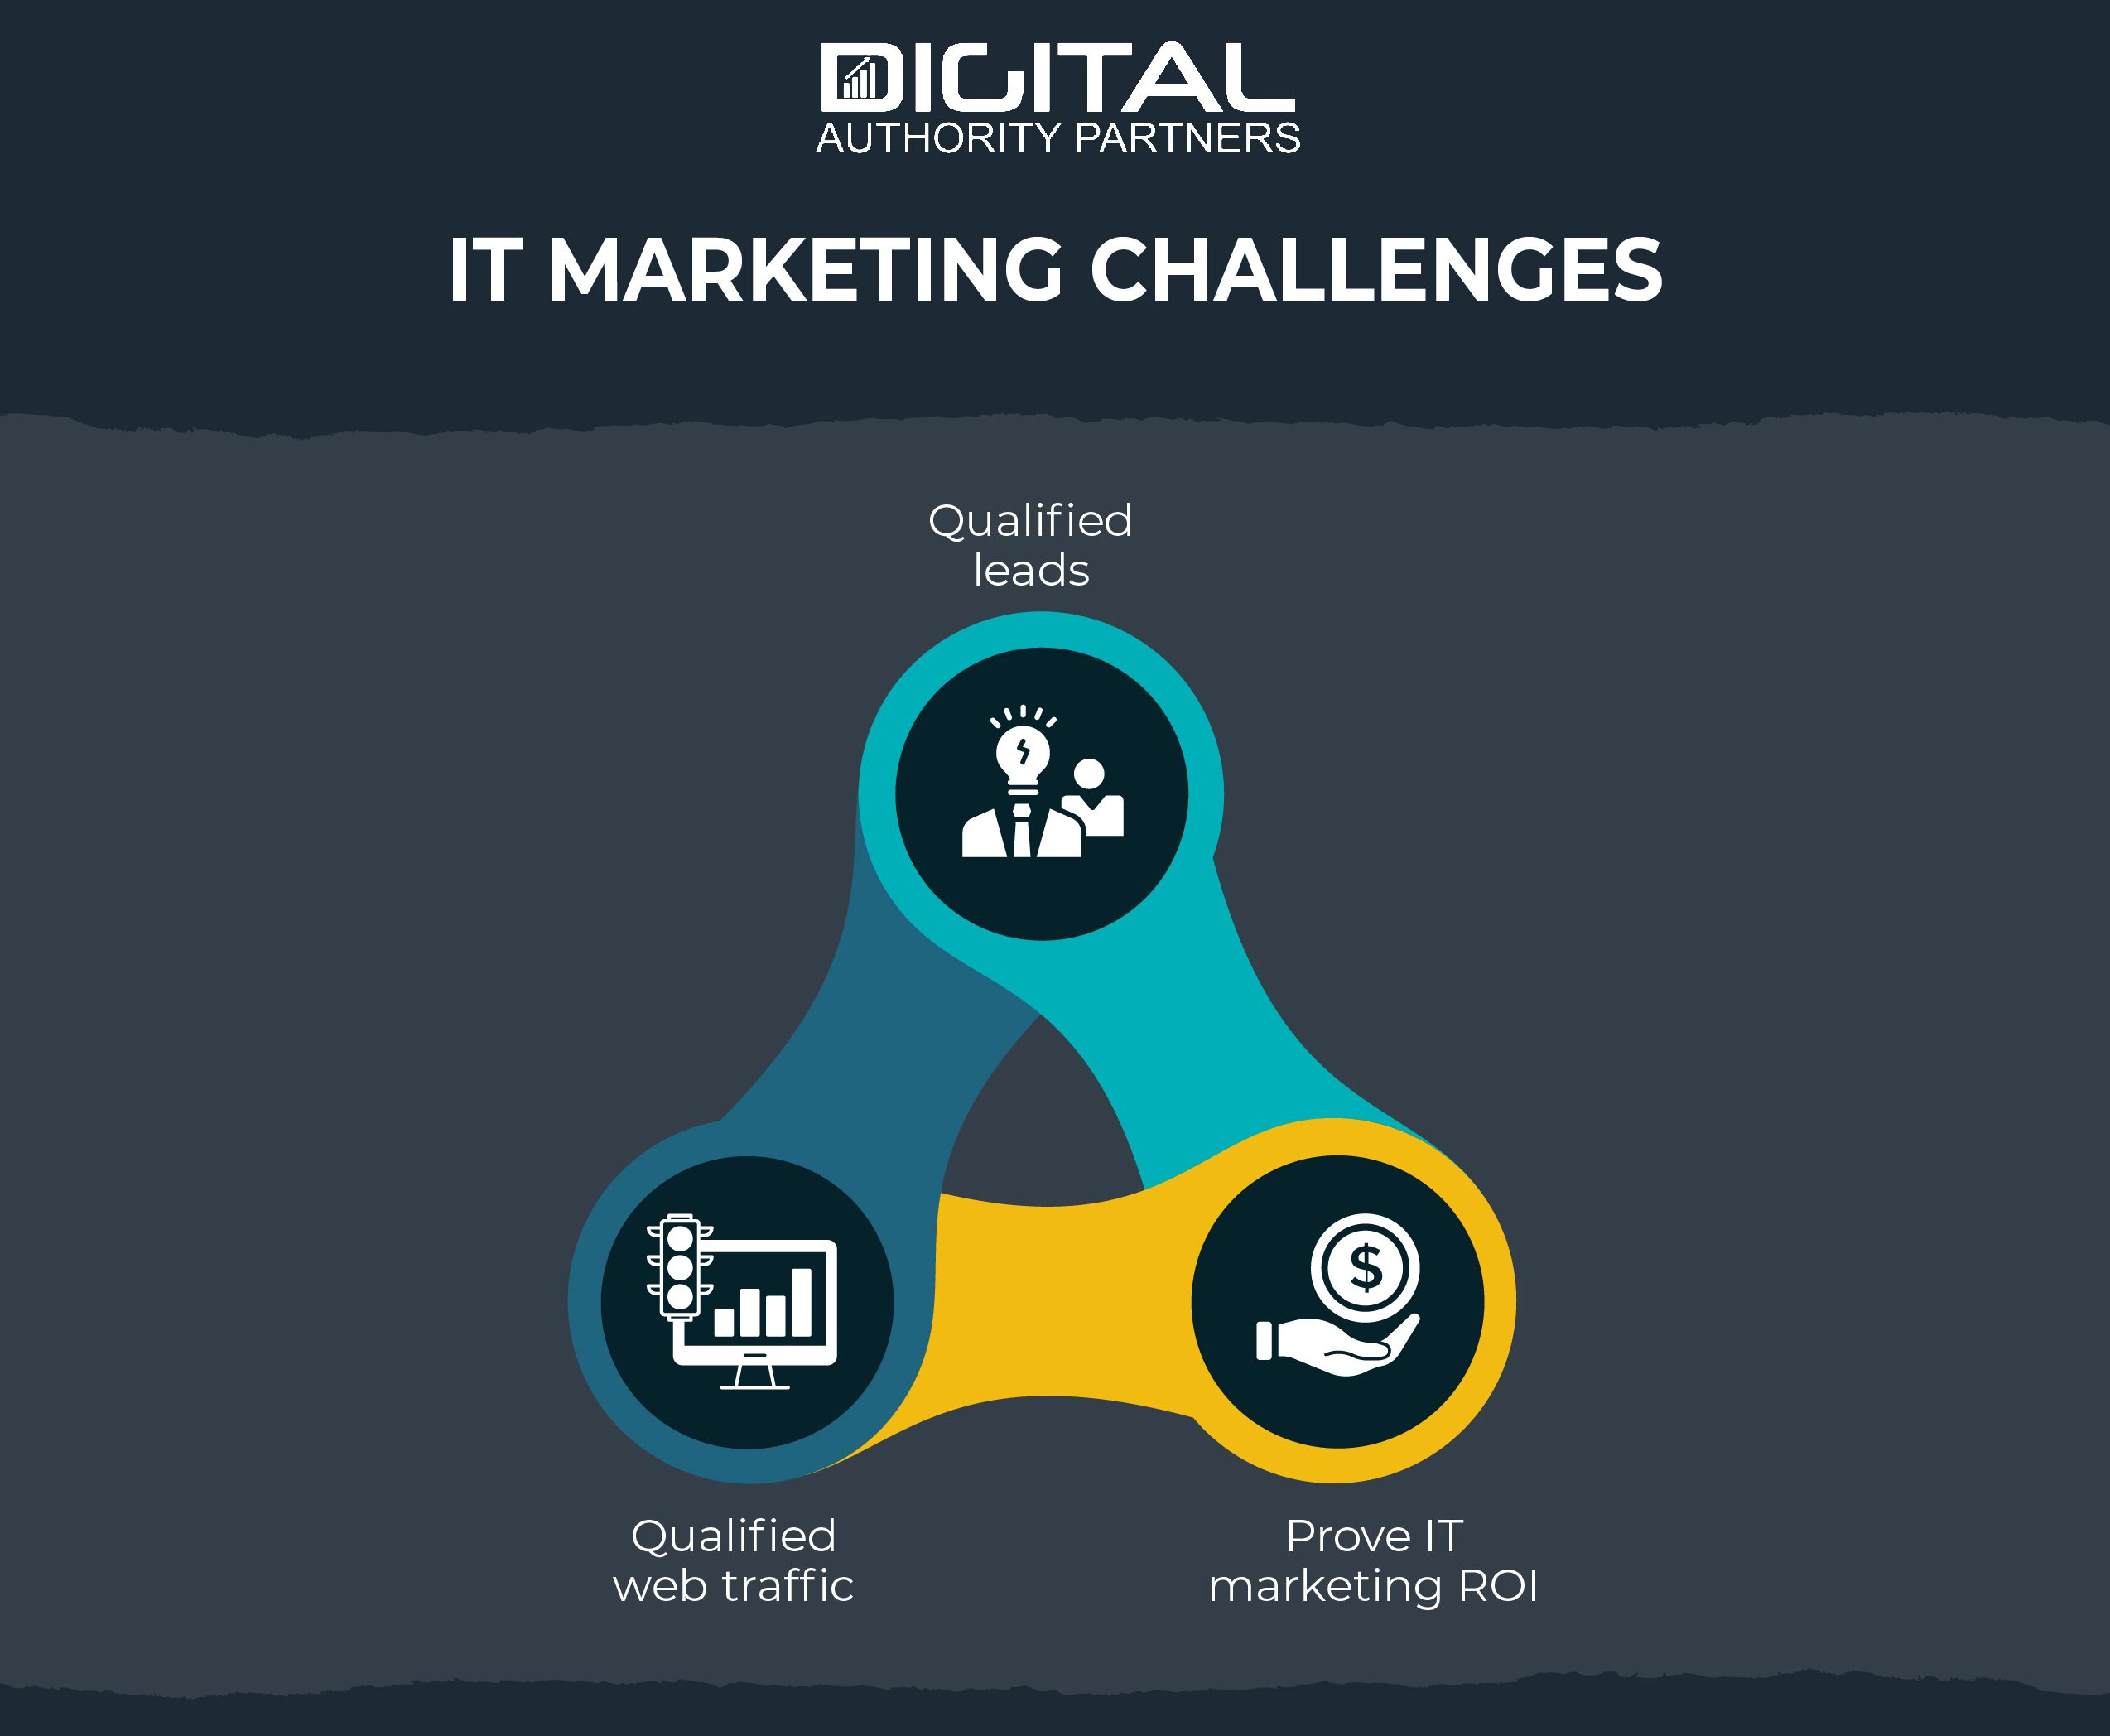 The Challenges of IT marketing: securing qualified leads and qualified traffic, and proving IT marketing ROI